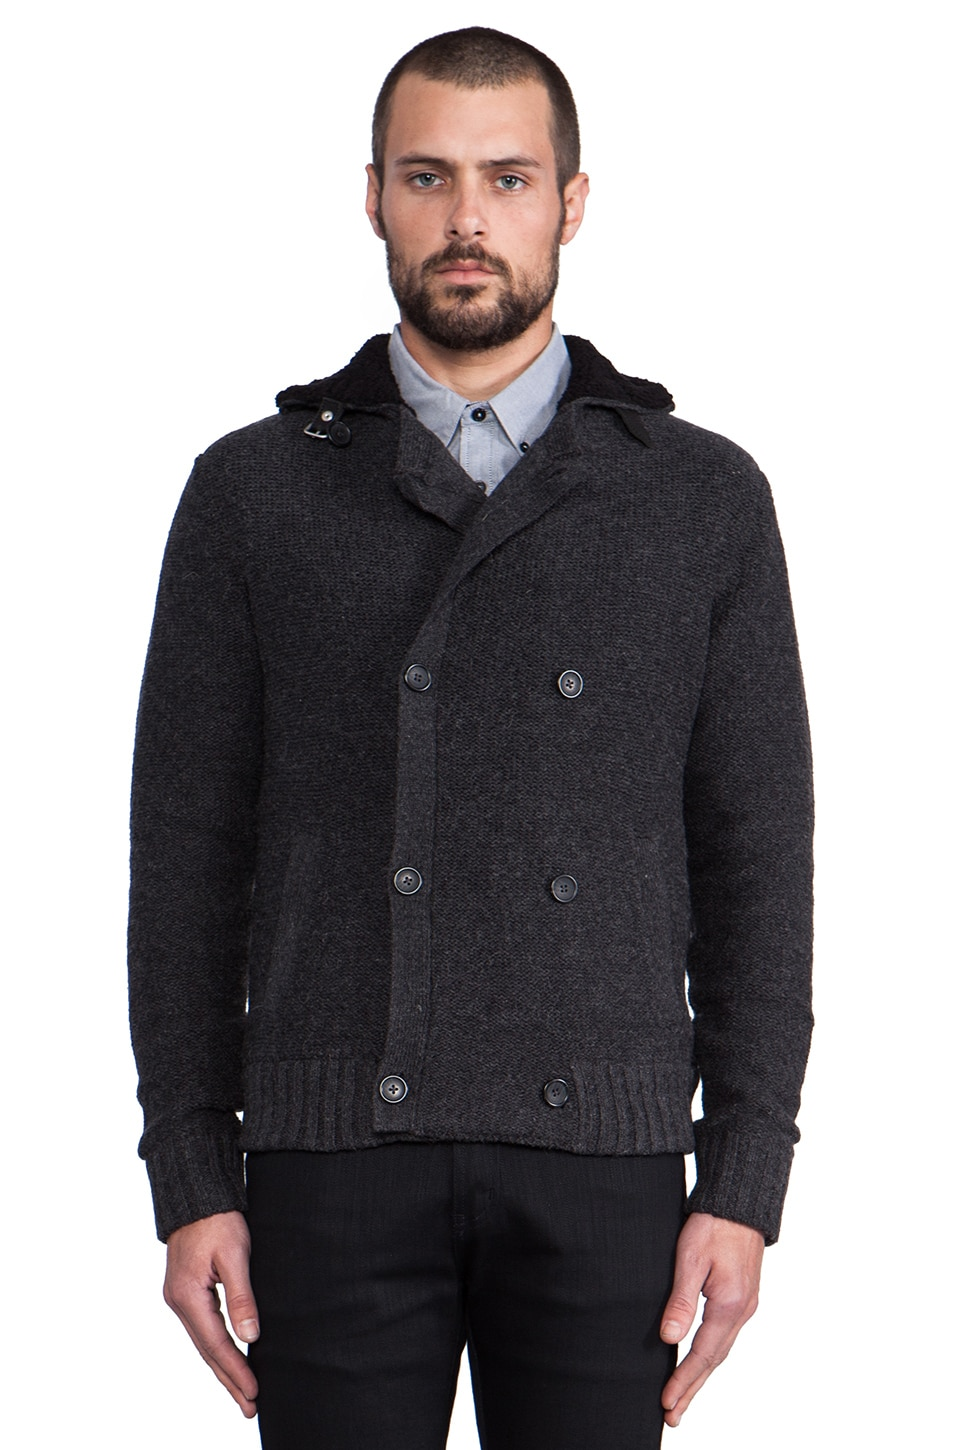 Penguin Faux Sherpa Lined Moto Jacket in Dark Charcoal Heather